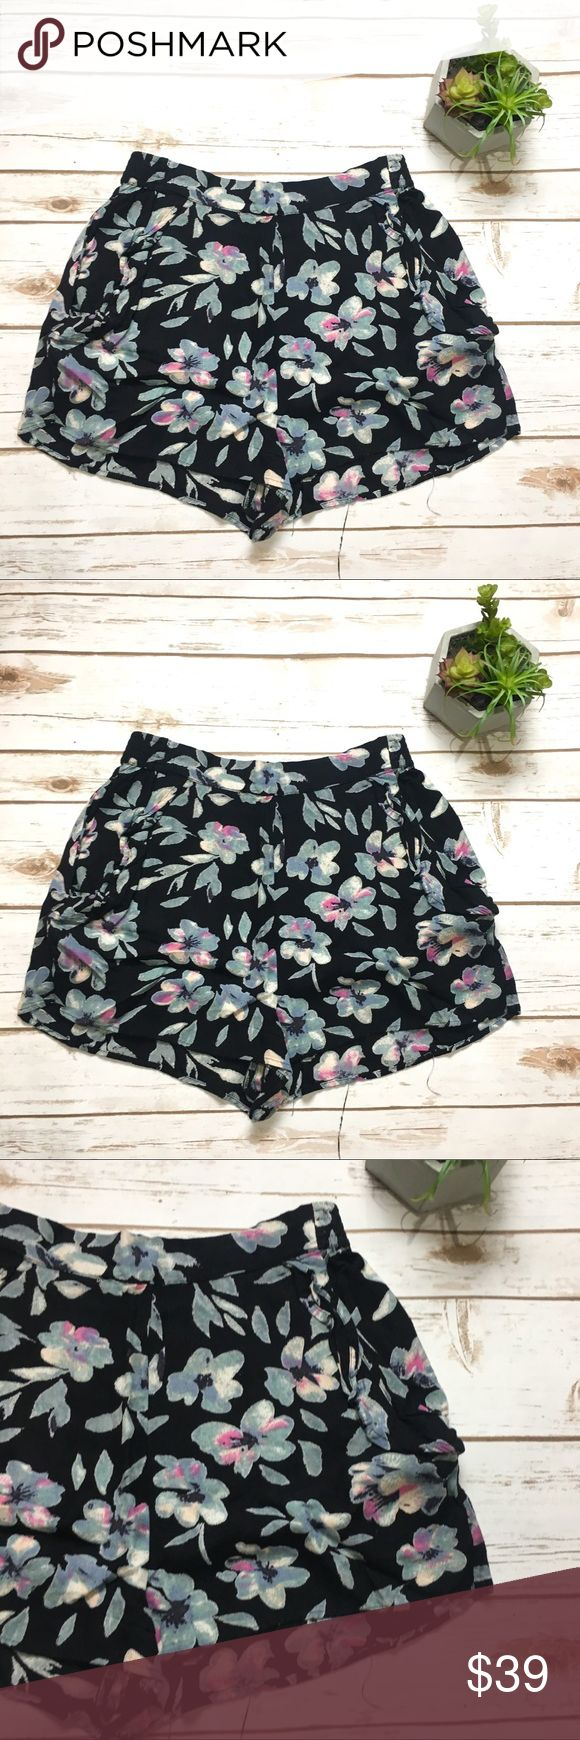 Urban Outfitters   flowy shorts Black and blue floral printed floral shorts. Kimchi Blue brand. Size small. Pockets on both sides! In excellent almost brand new condition! Feel free to ask questions or make an offer! Bundle for a discount! 0301:: Urban Outfitters Shorts